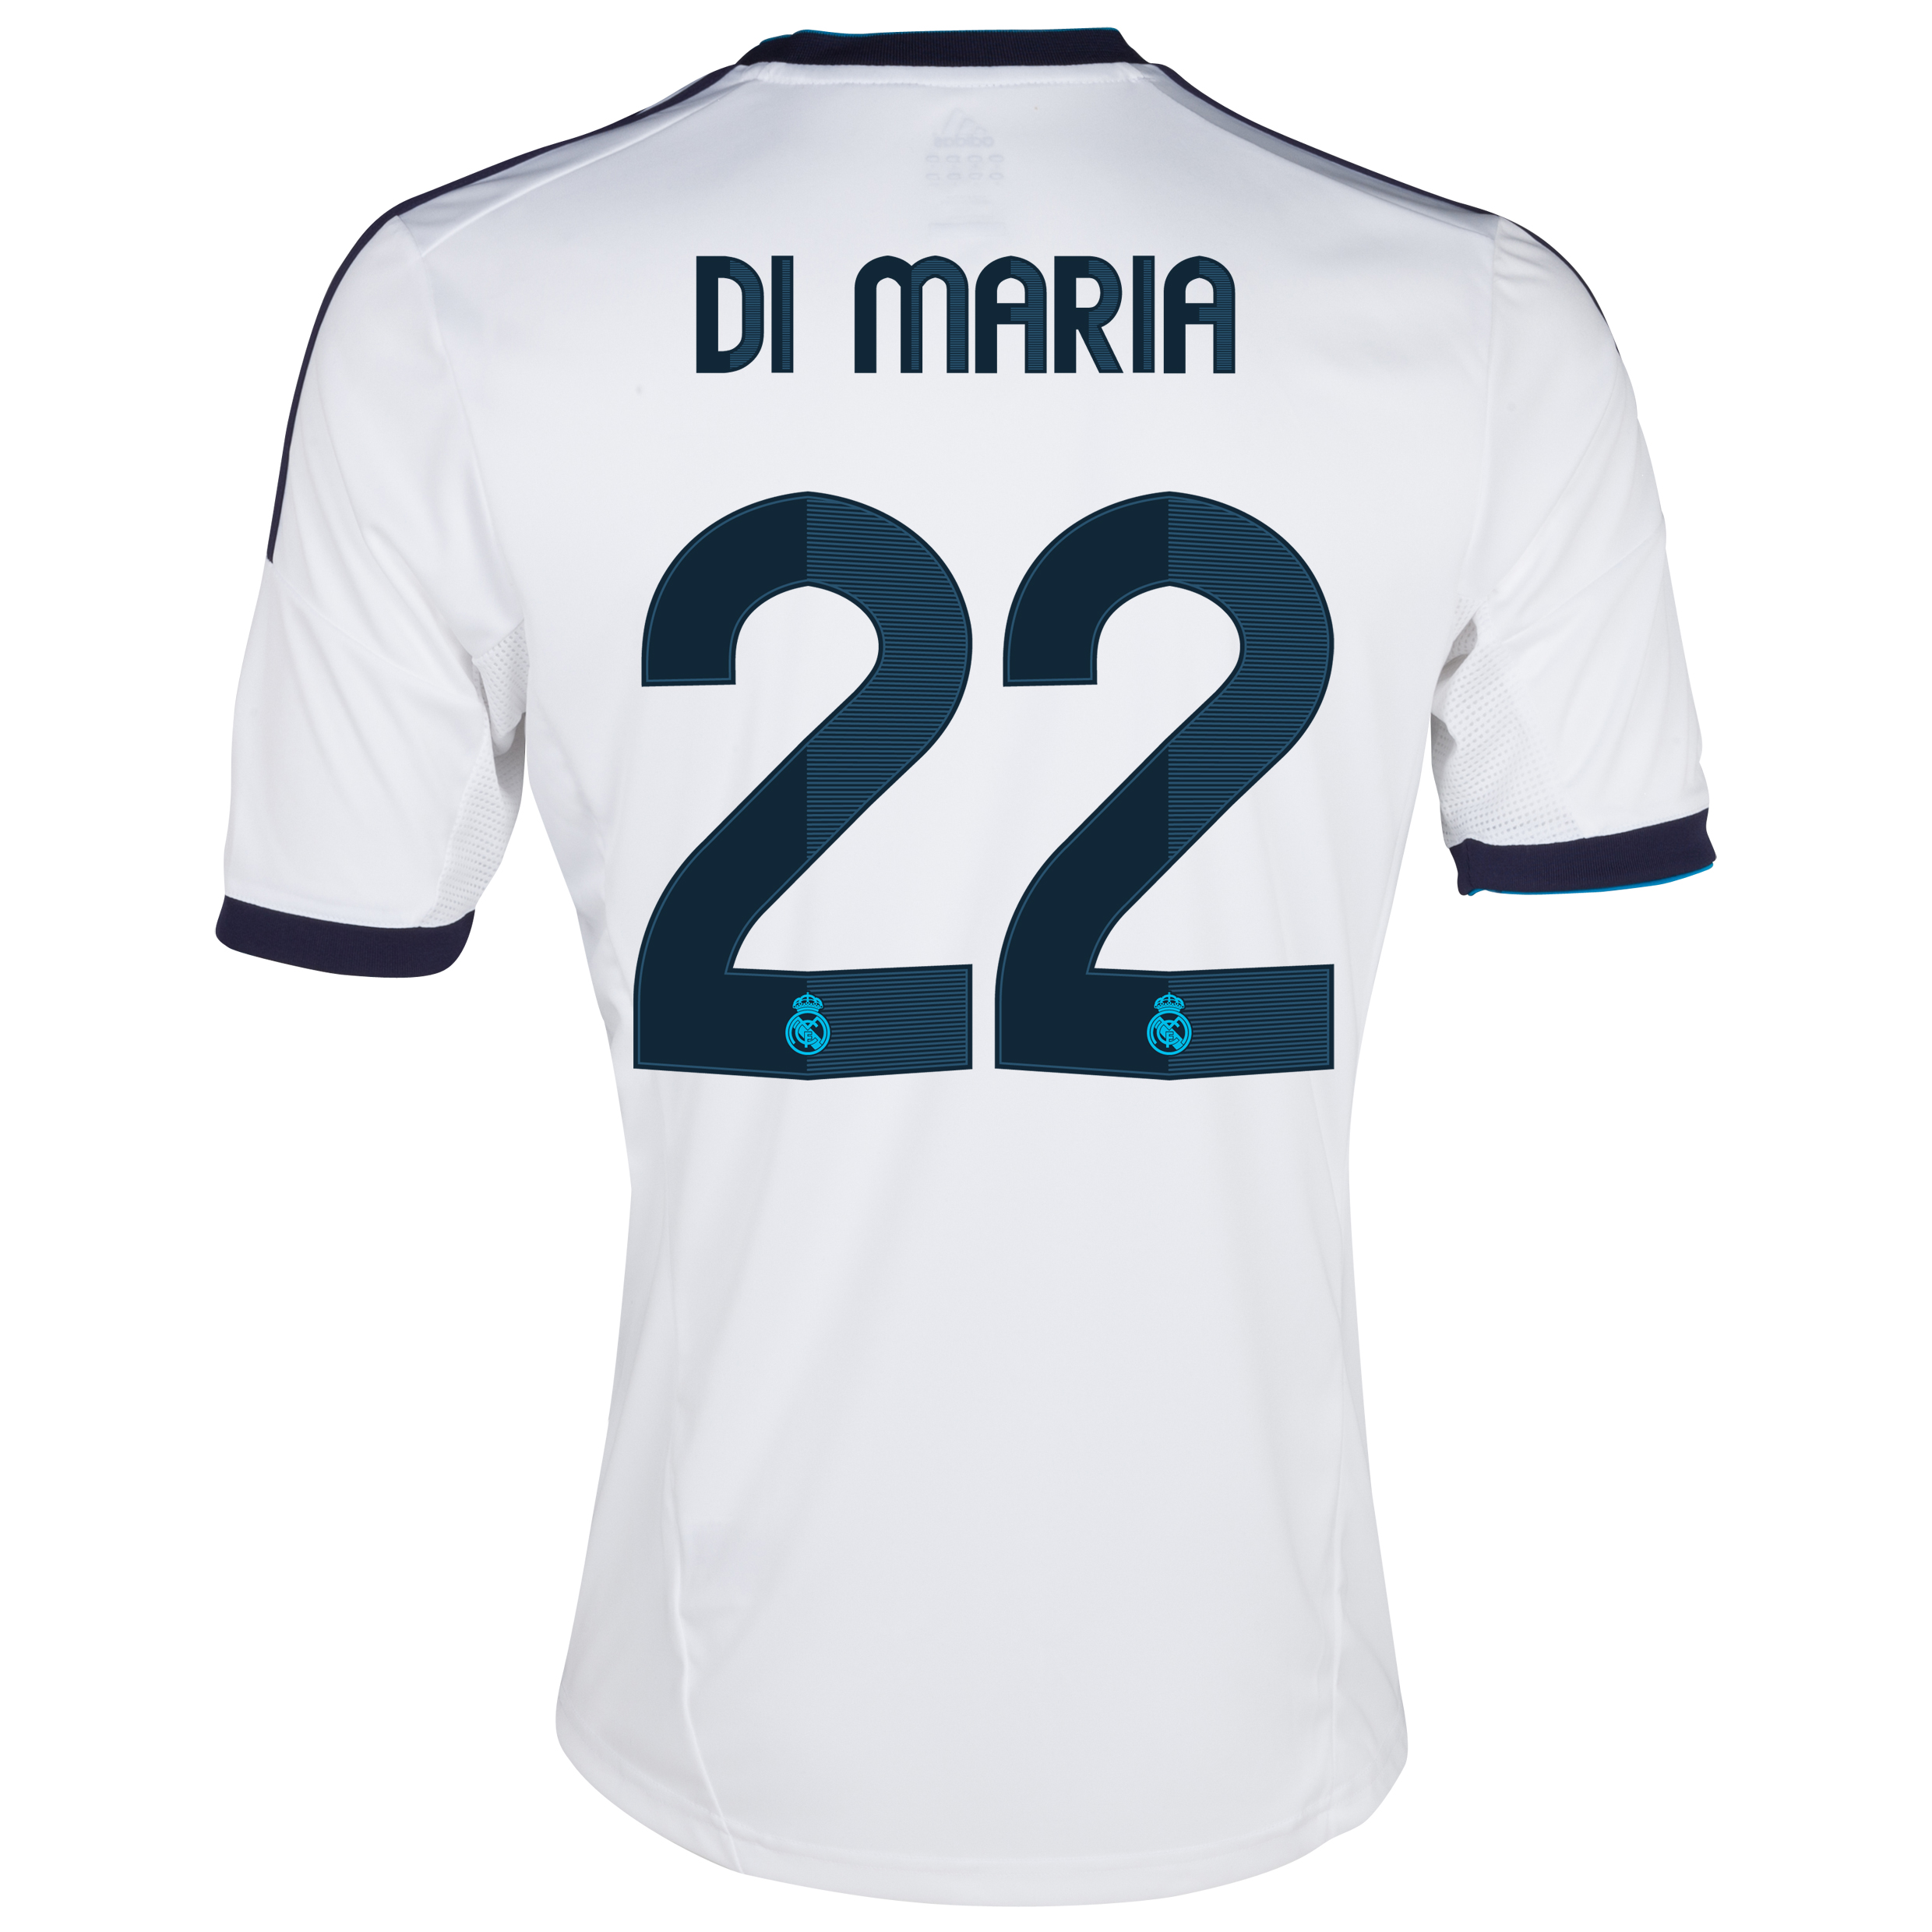 Camiseta 1 equipacin del Real Madrid 2012/13 con Di Mara 22